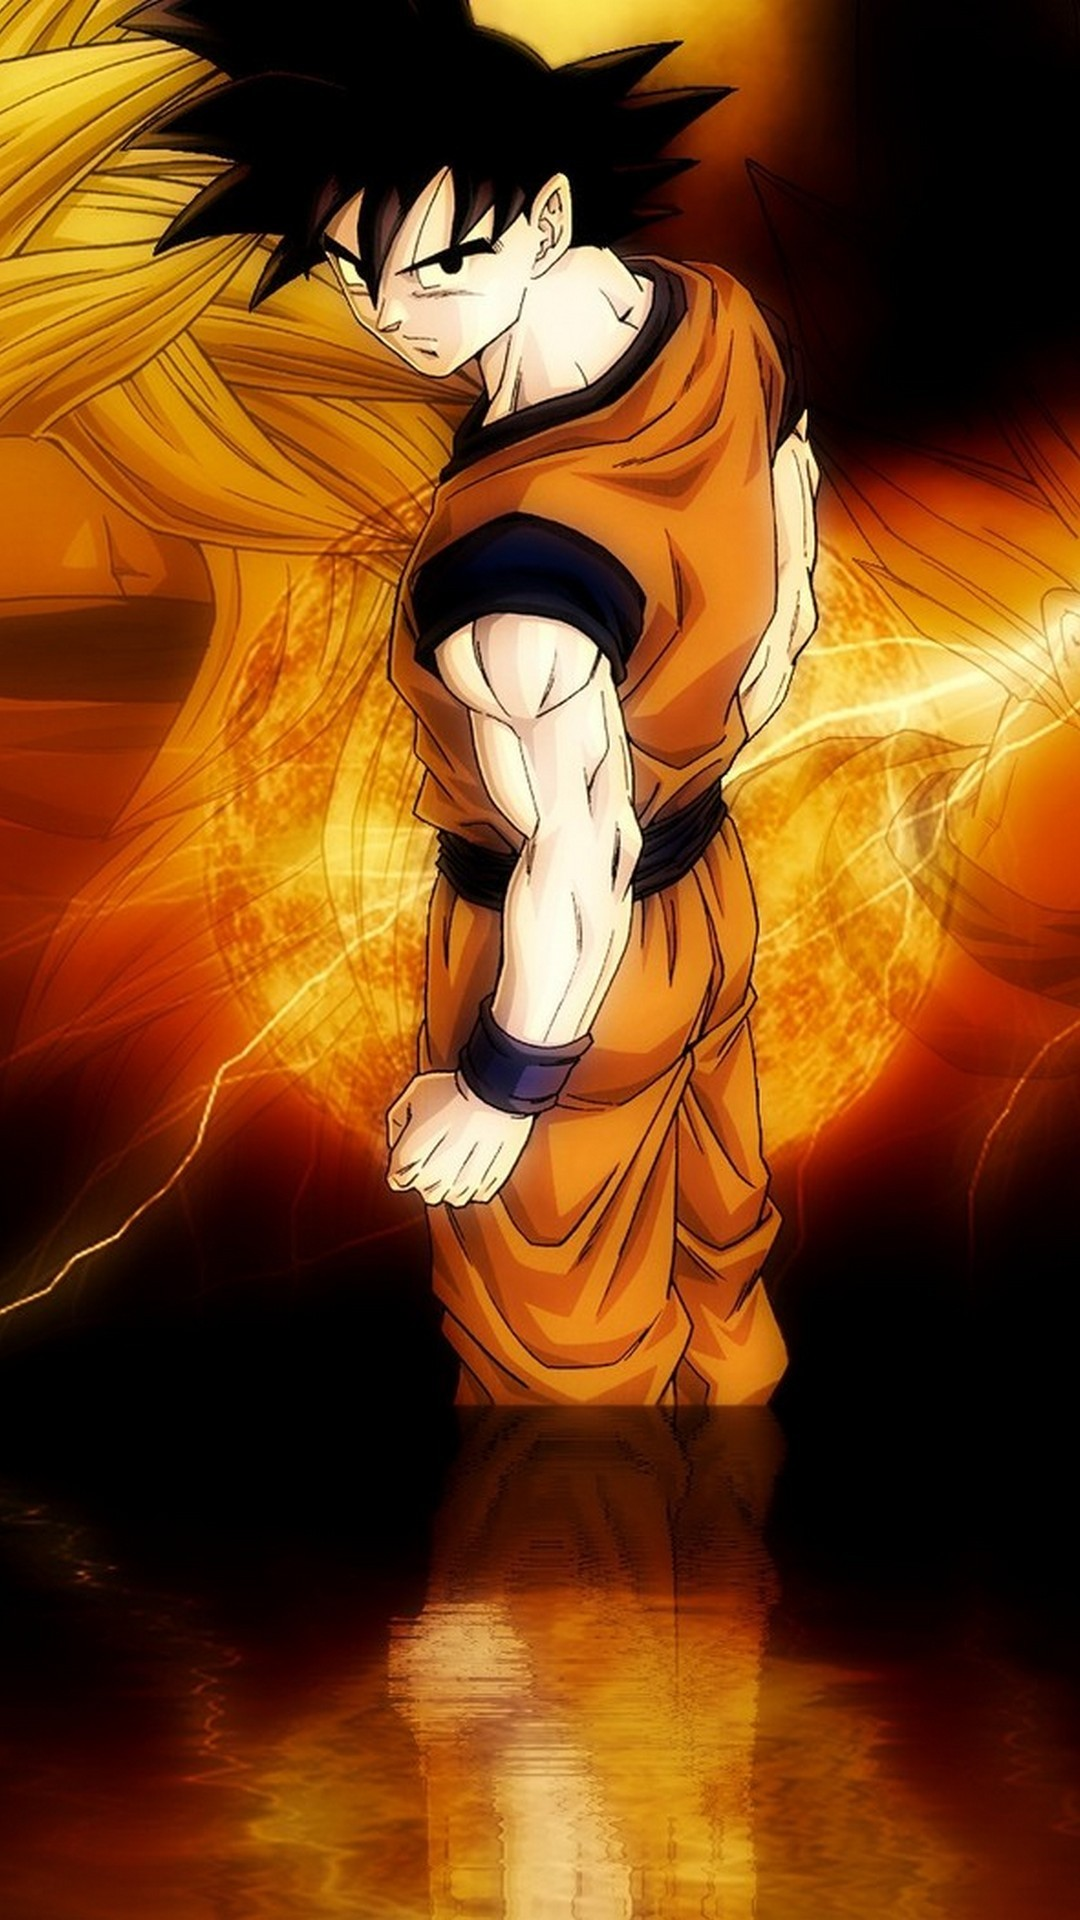 Goku Images Wallpaper For Android